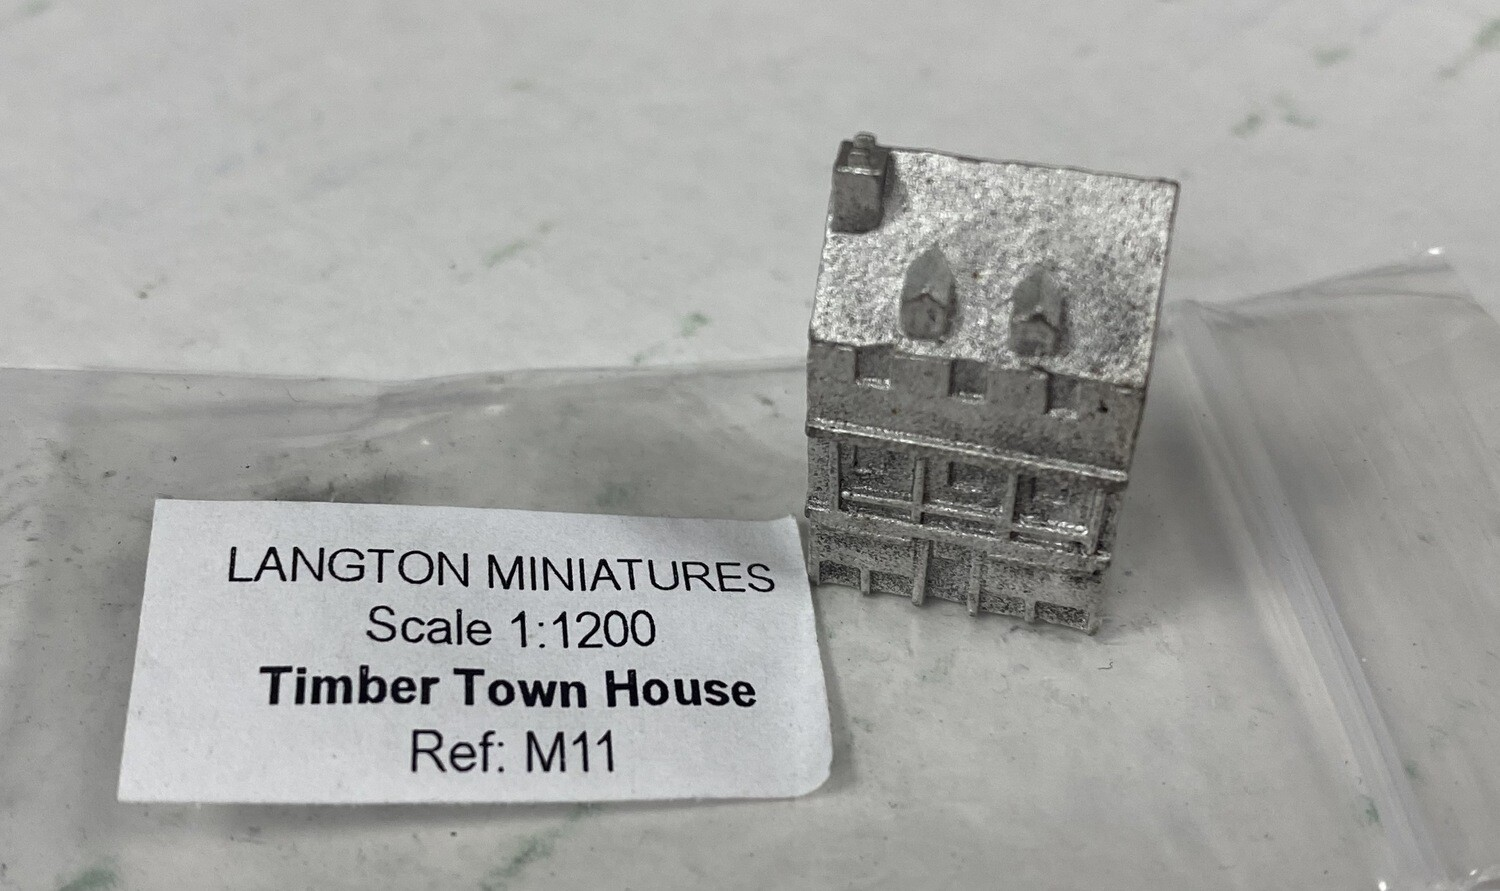 M11 Timber Town House